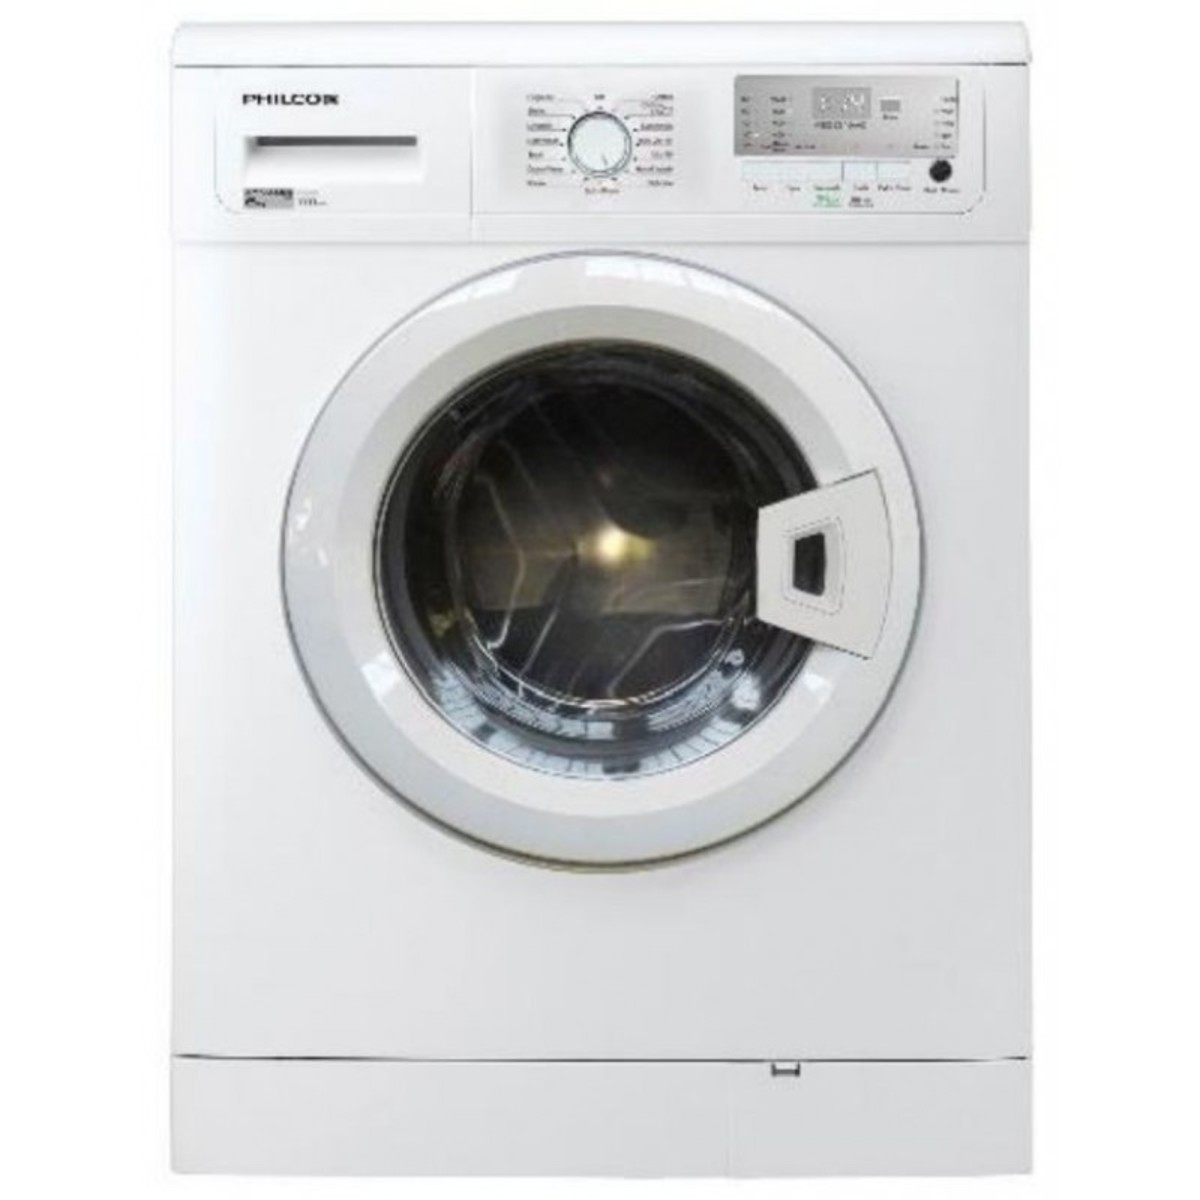 PW86100  6.0kg 1000rpm Front Loaded Washer